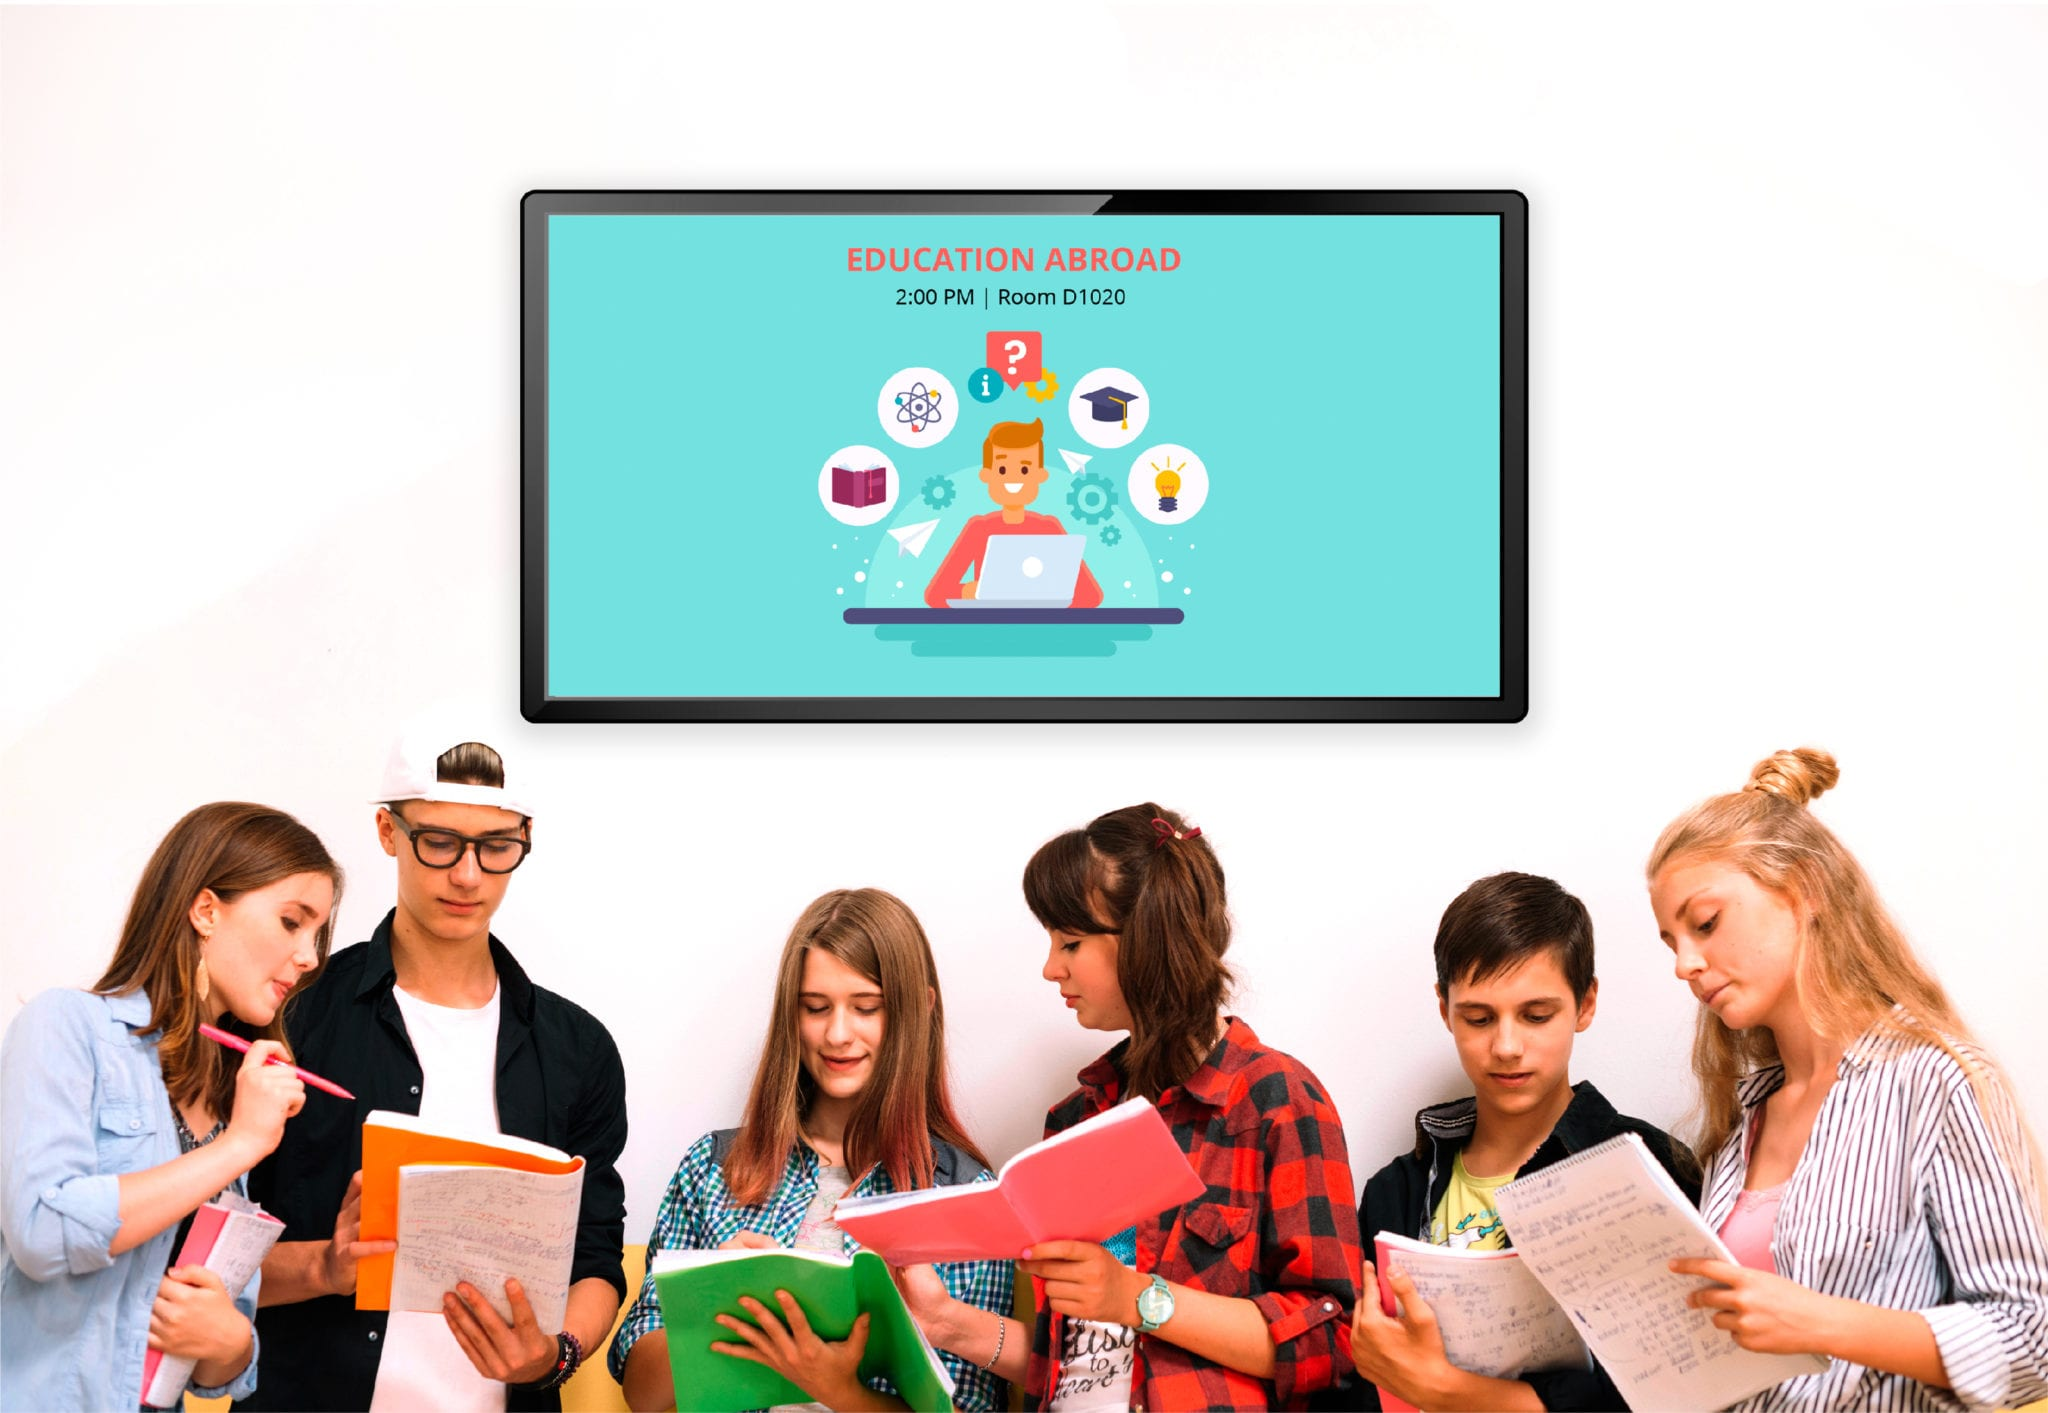 Back in Class: 7 Great Ways to Use Digital Signage for Schools